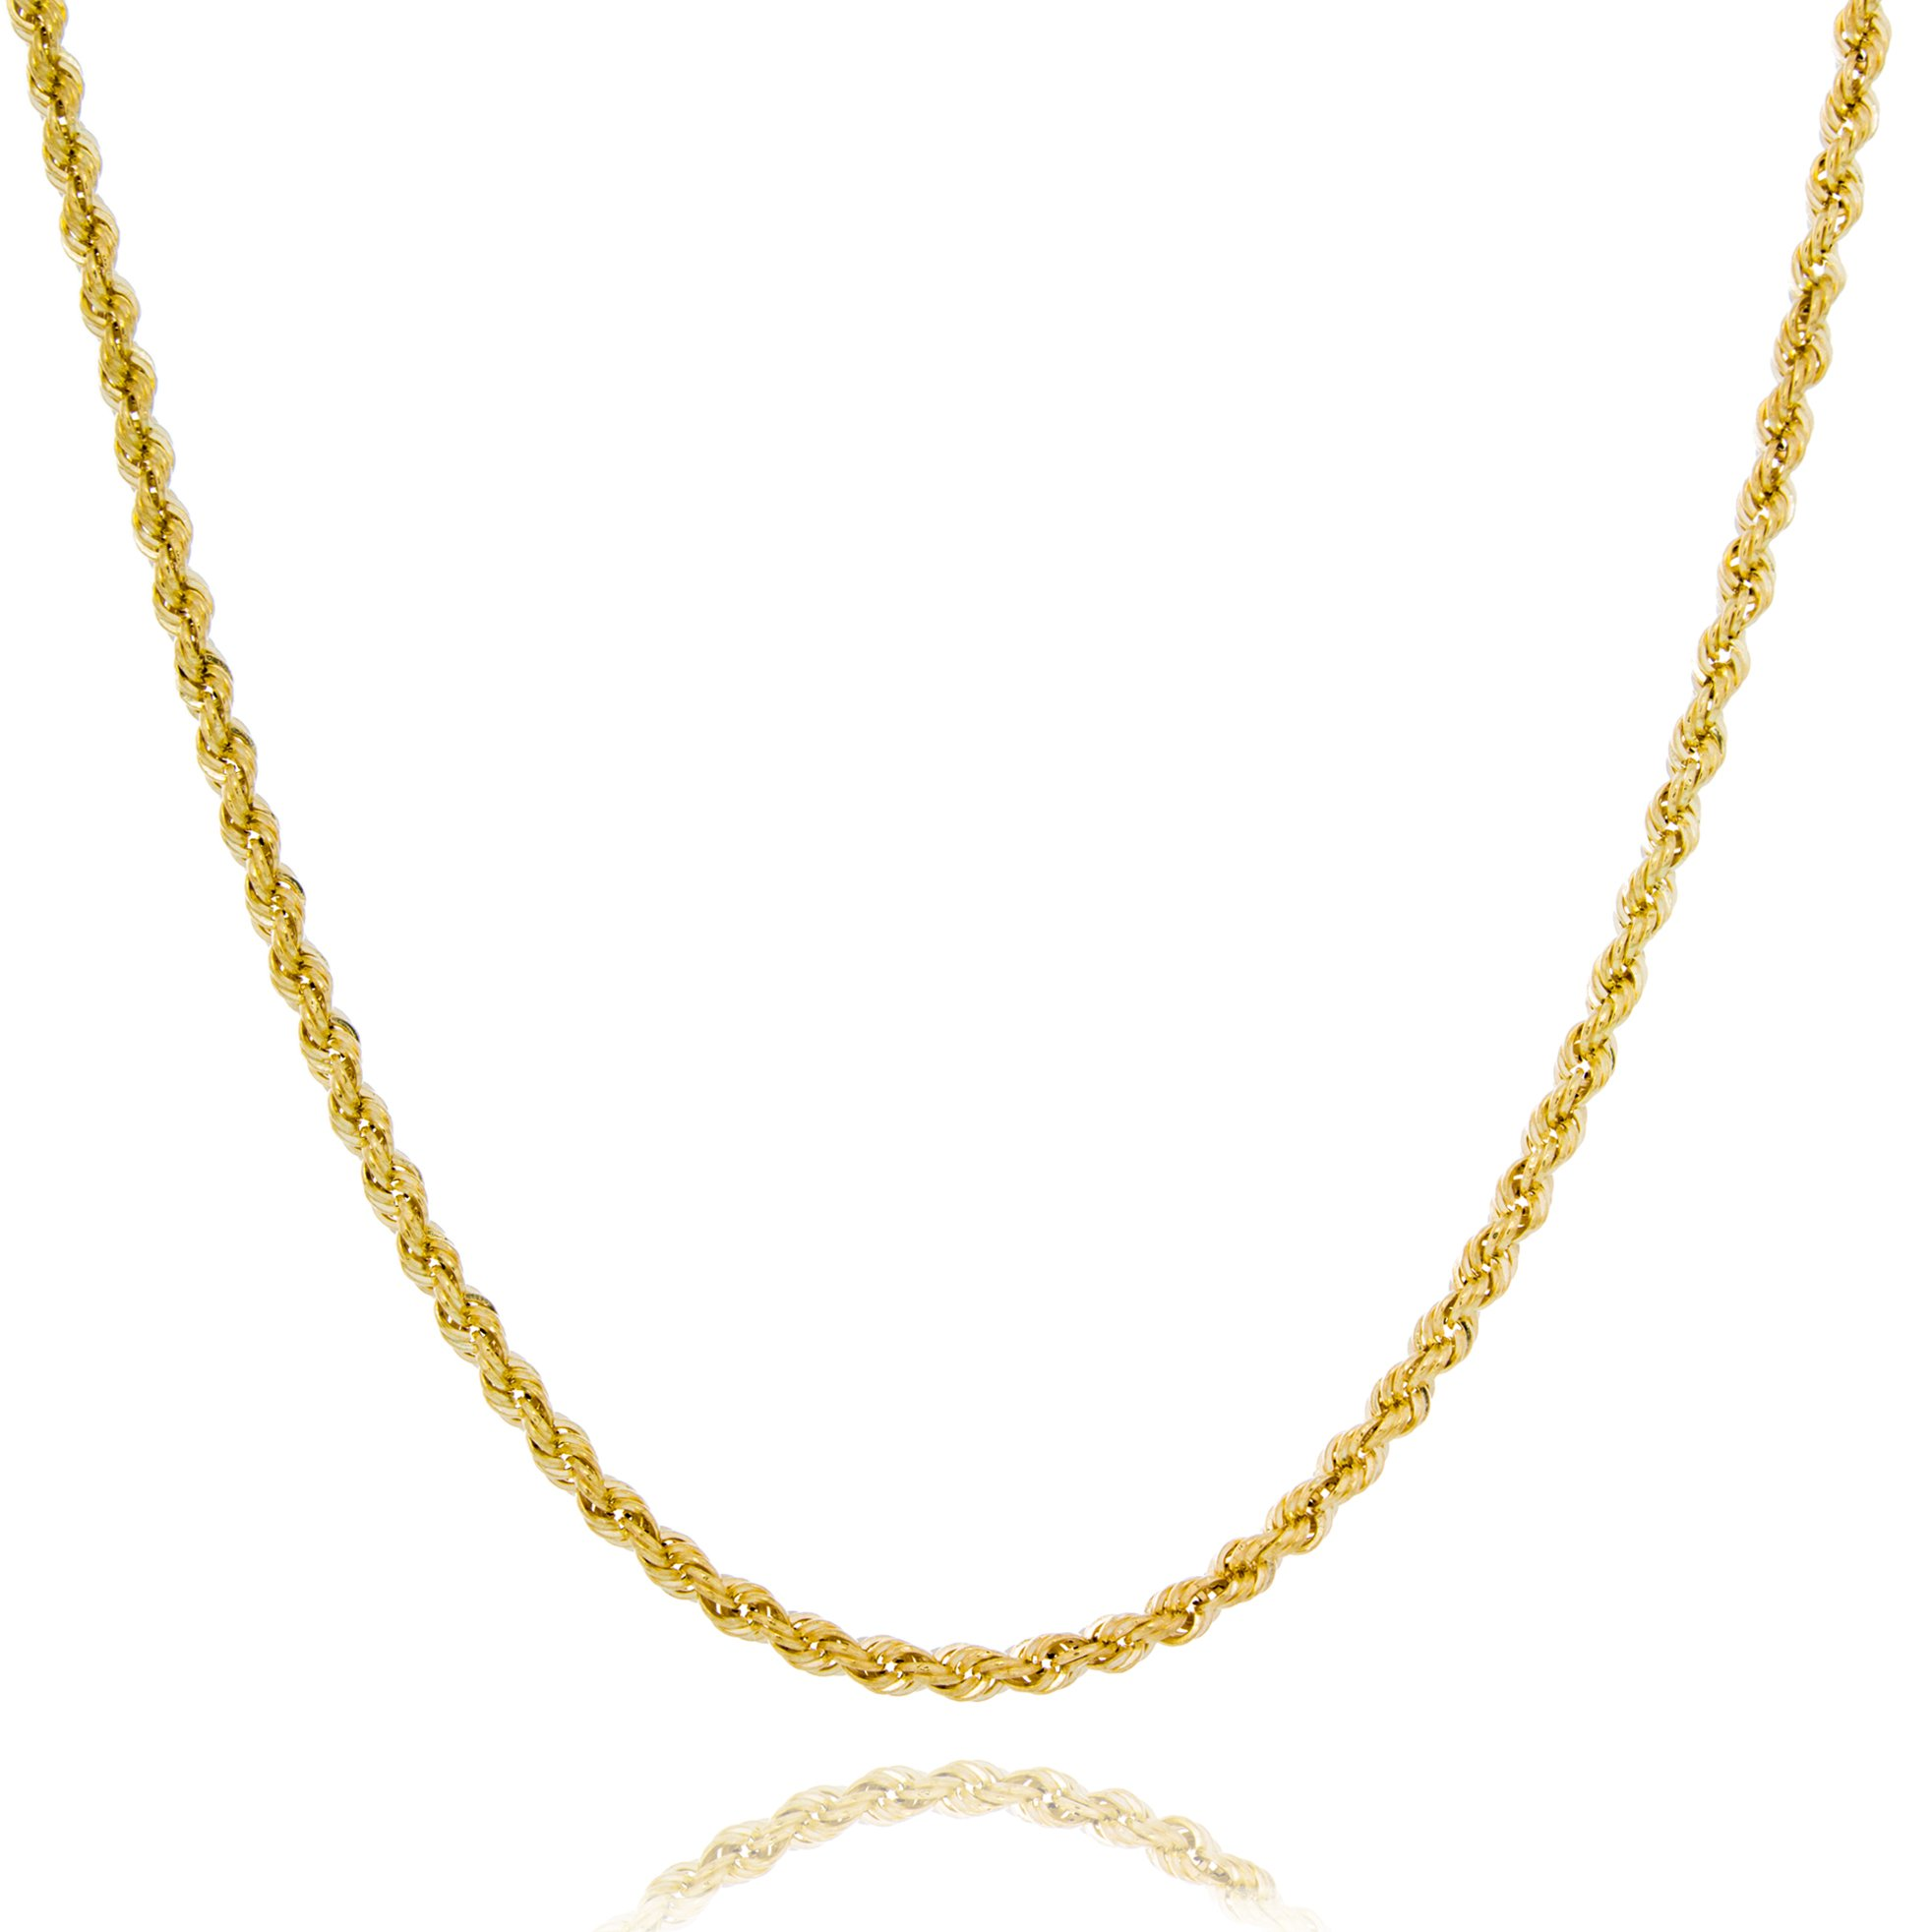 Solid Gold 14K Hollow French Rope Lightweight Chain Necklace Made in Italy 2mm Wide by 24'' Long   2.4g